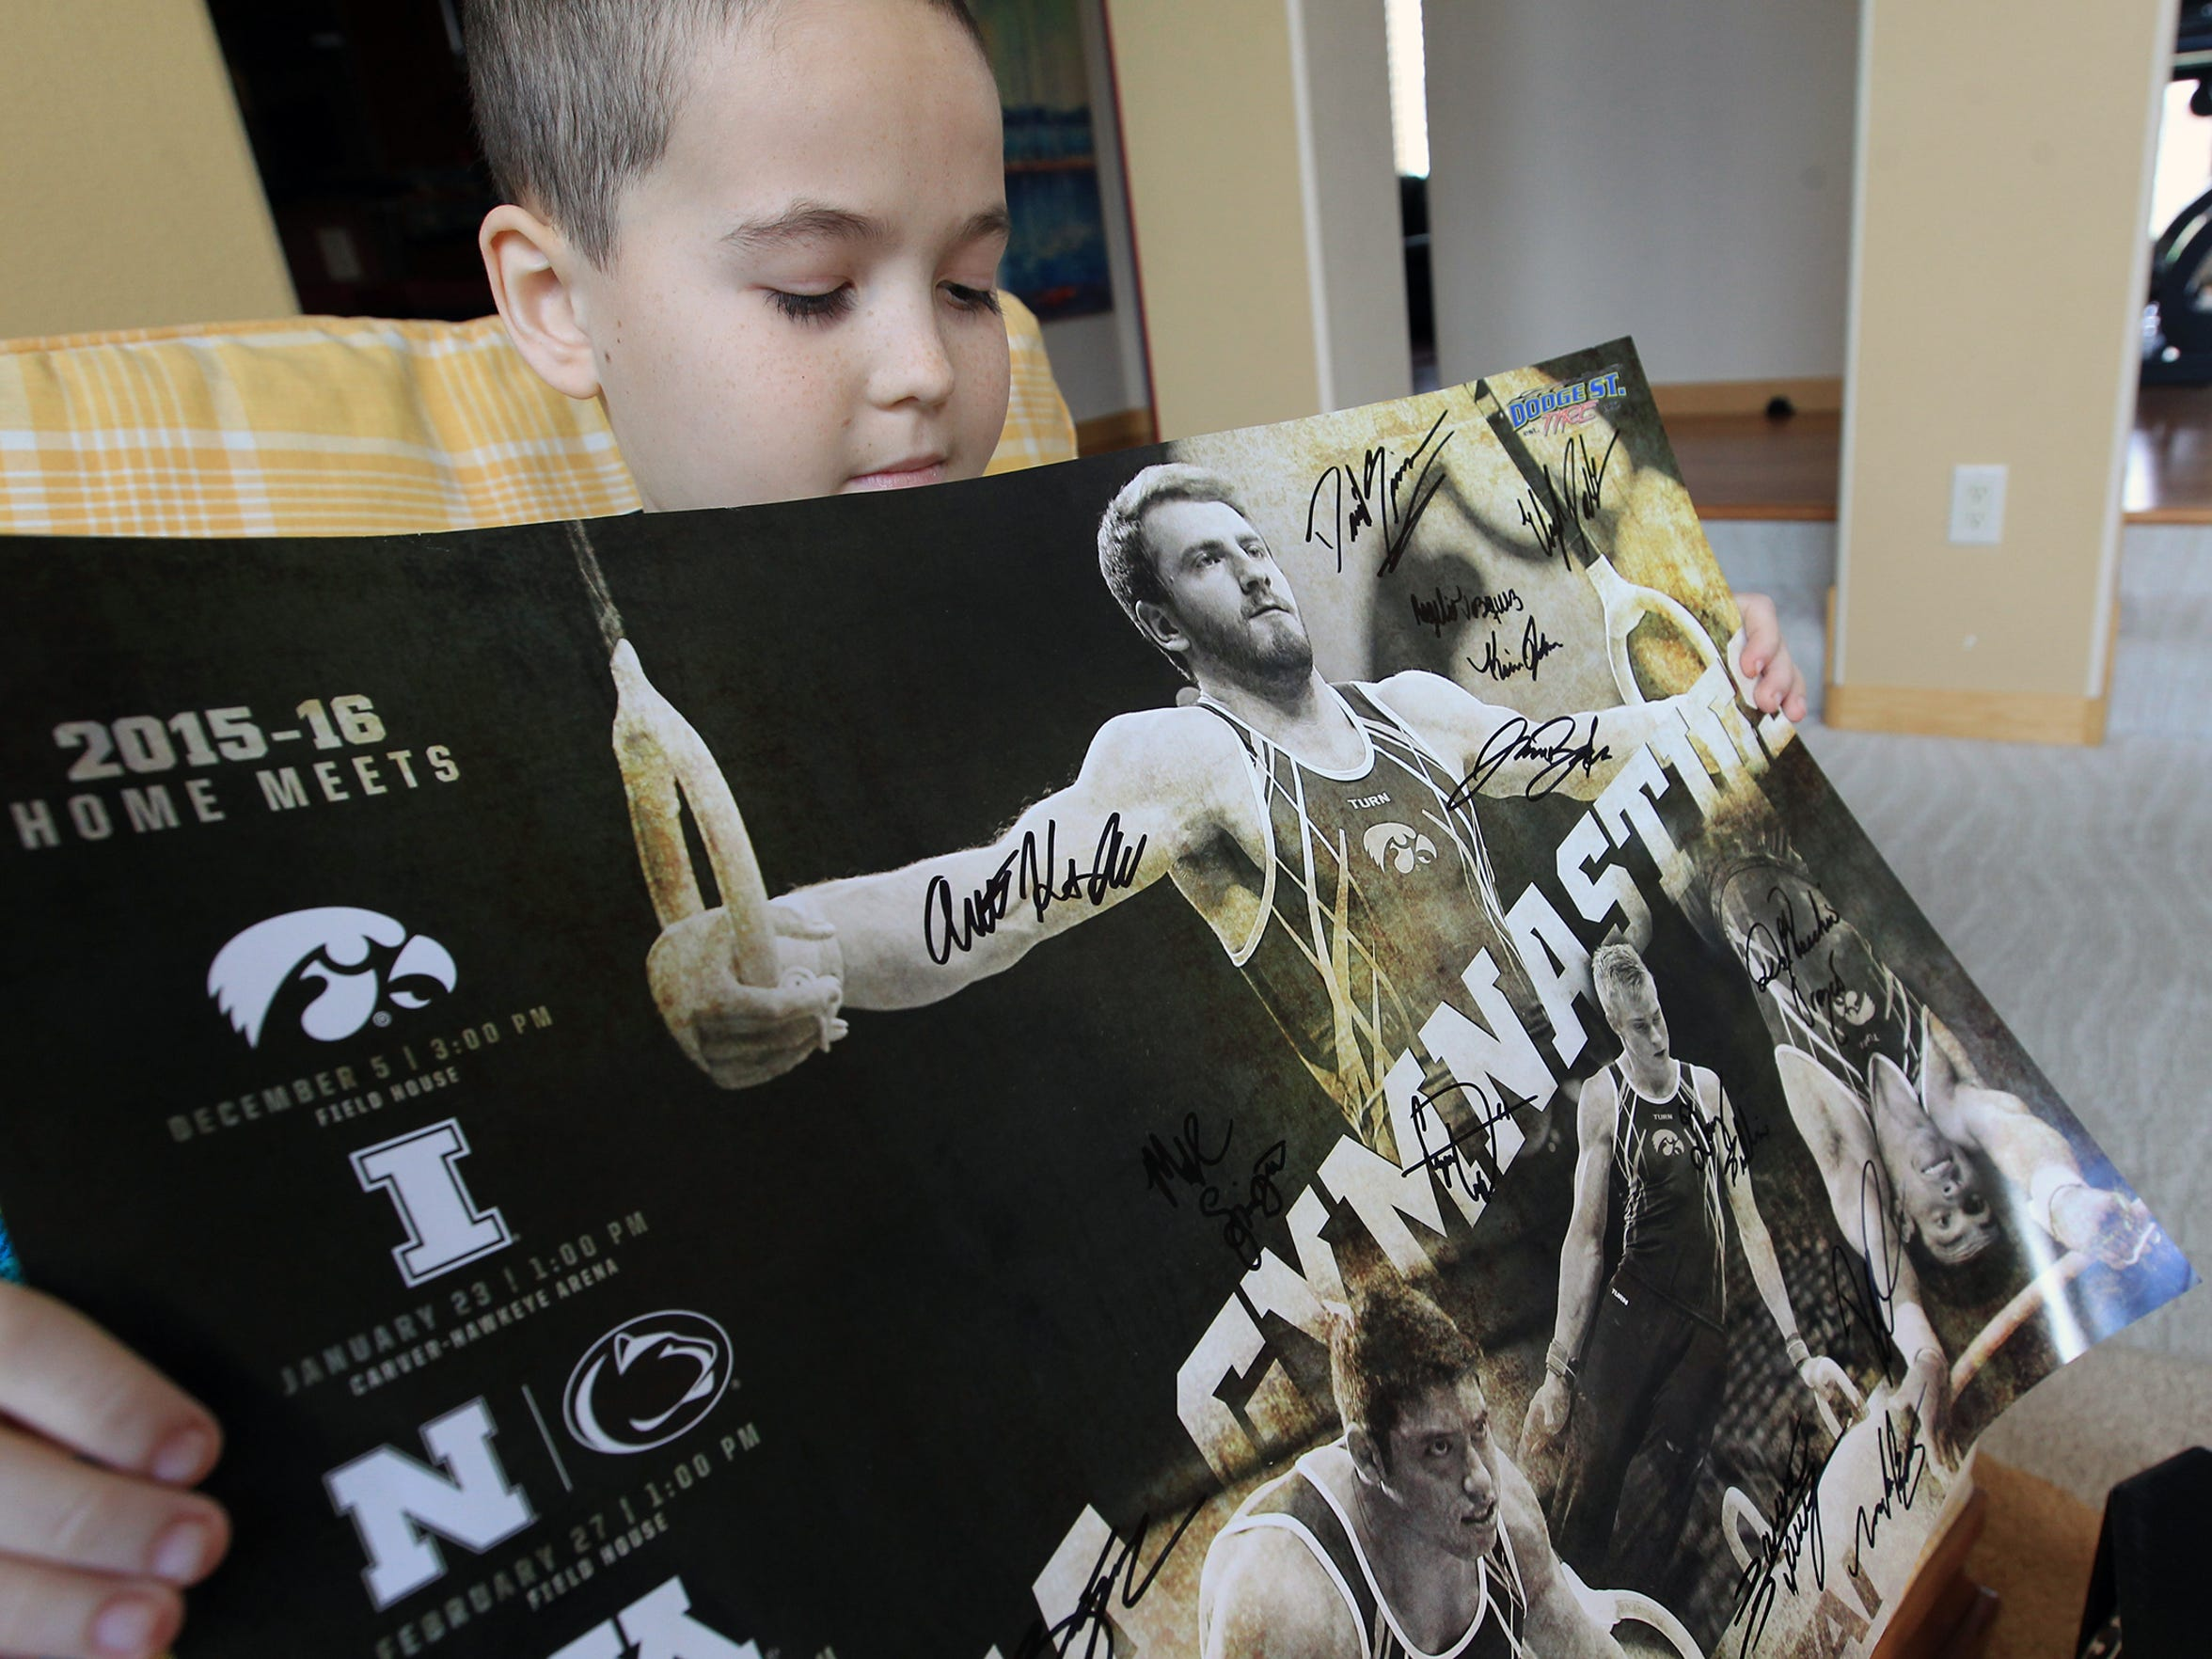 Calder Wills shows off a signed poster from Iowa's